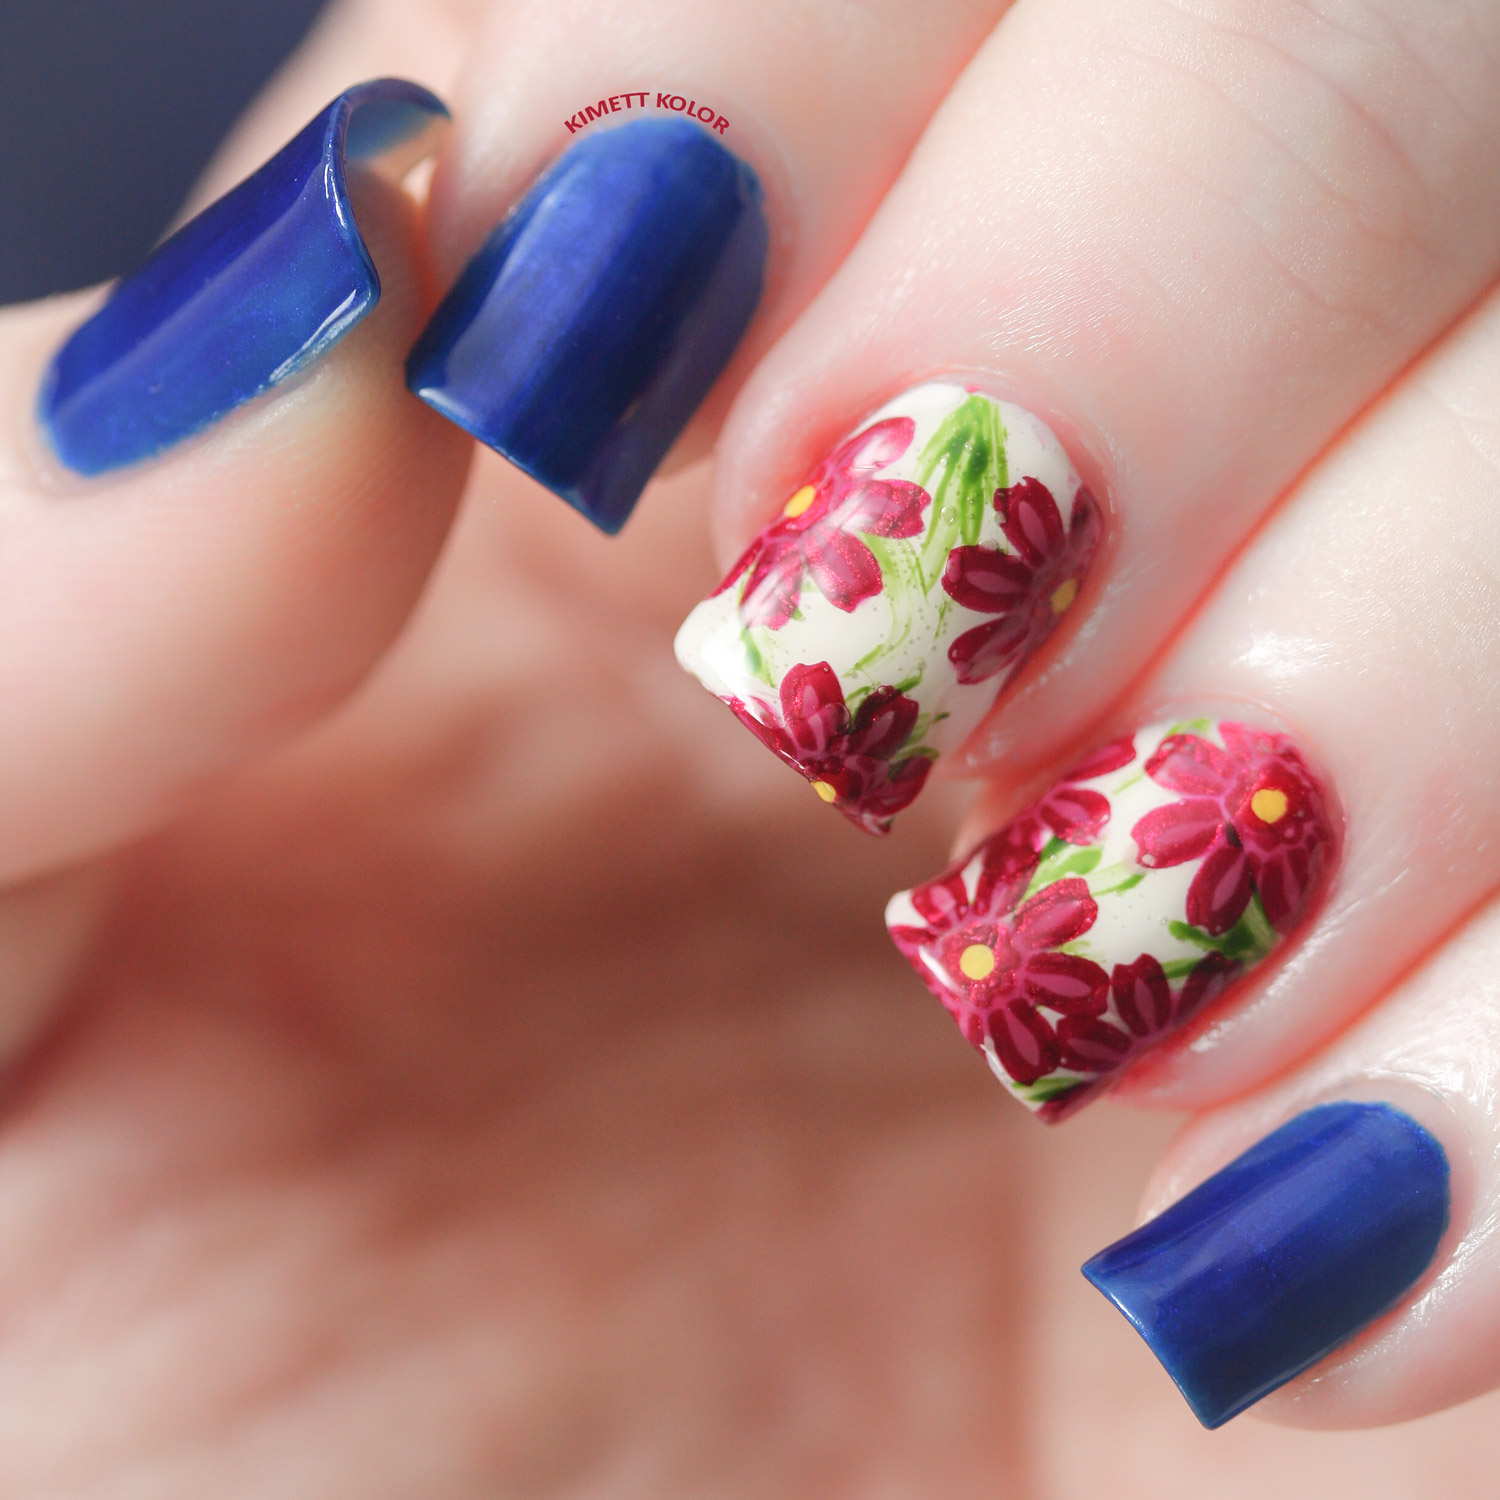 Sapphire and Aster September Nail Art by KimettKolor